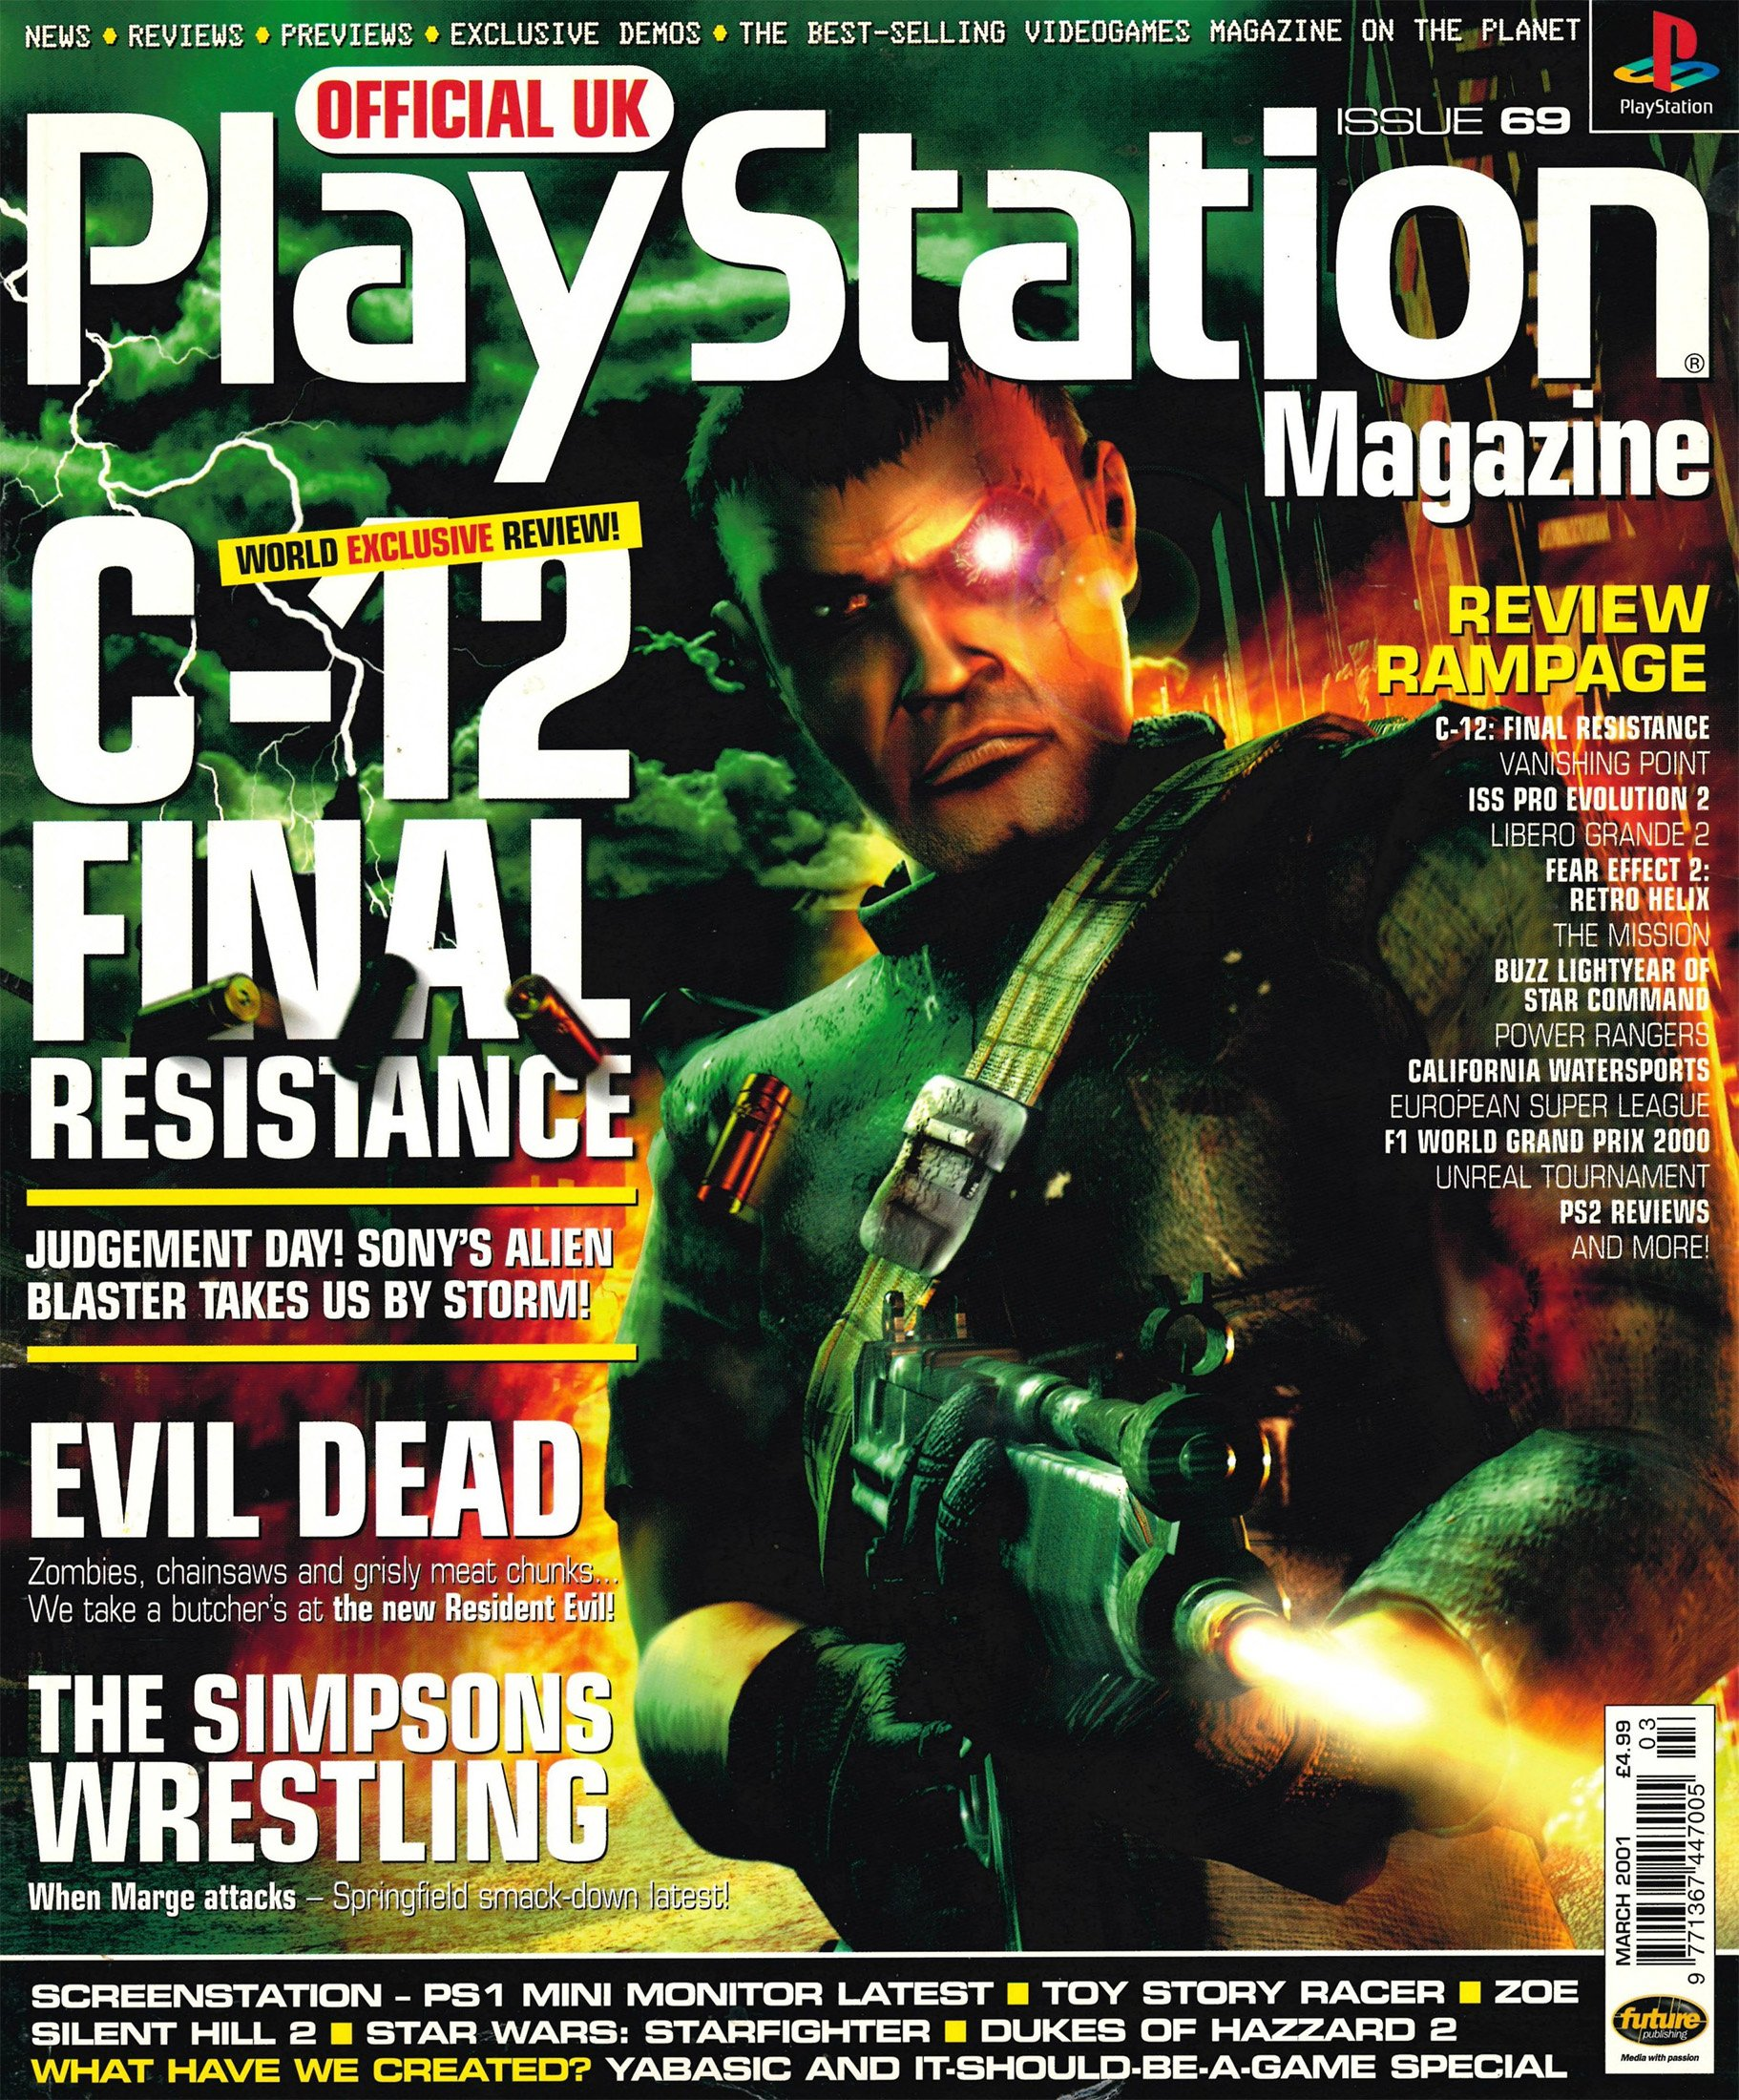 Official UK PlayStation Magazine Issue 069 (March 2001)